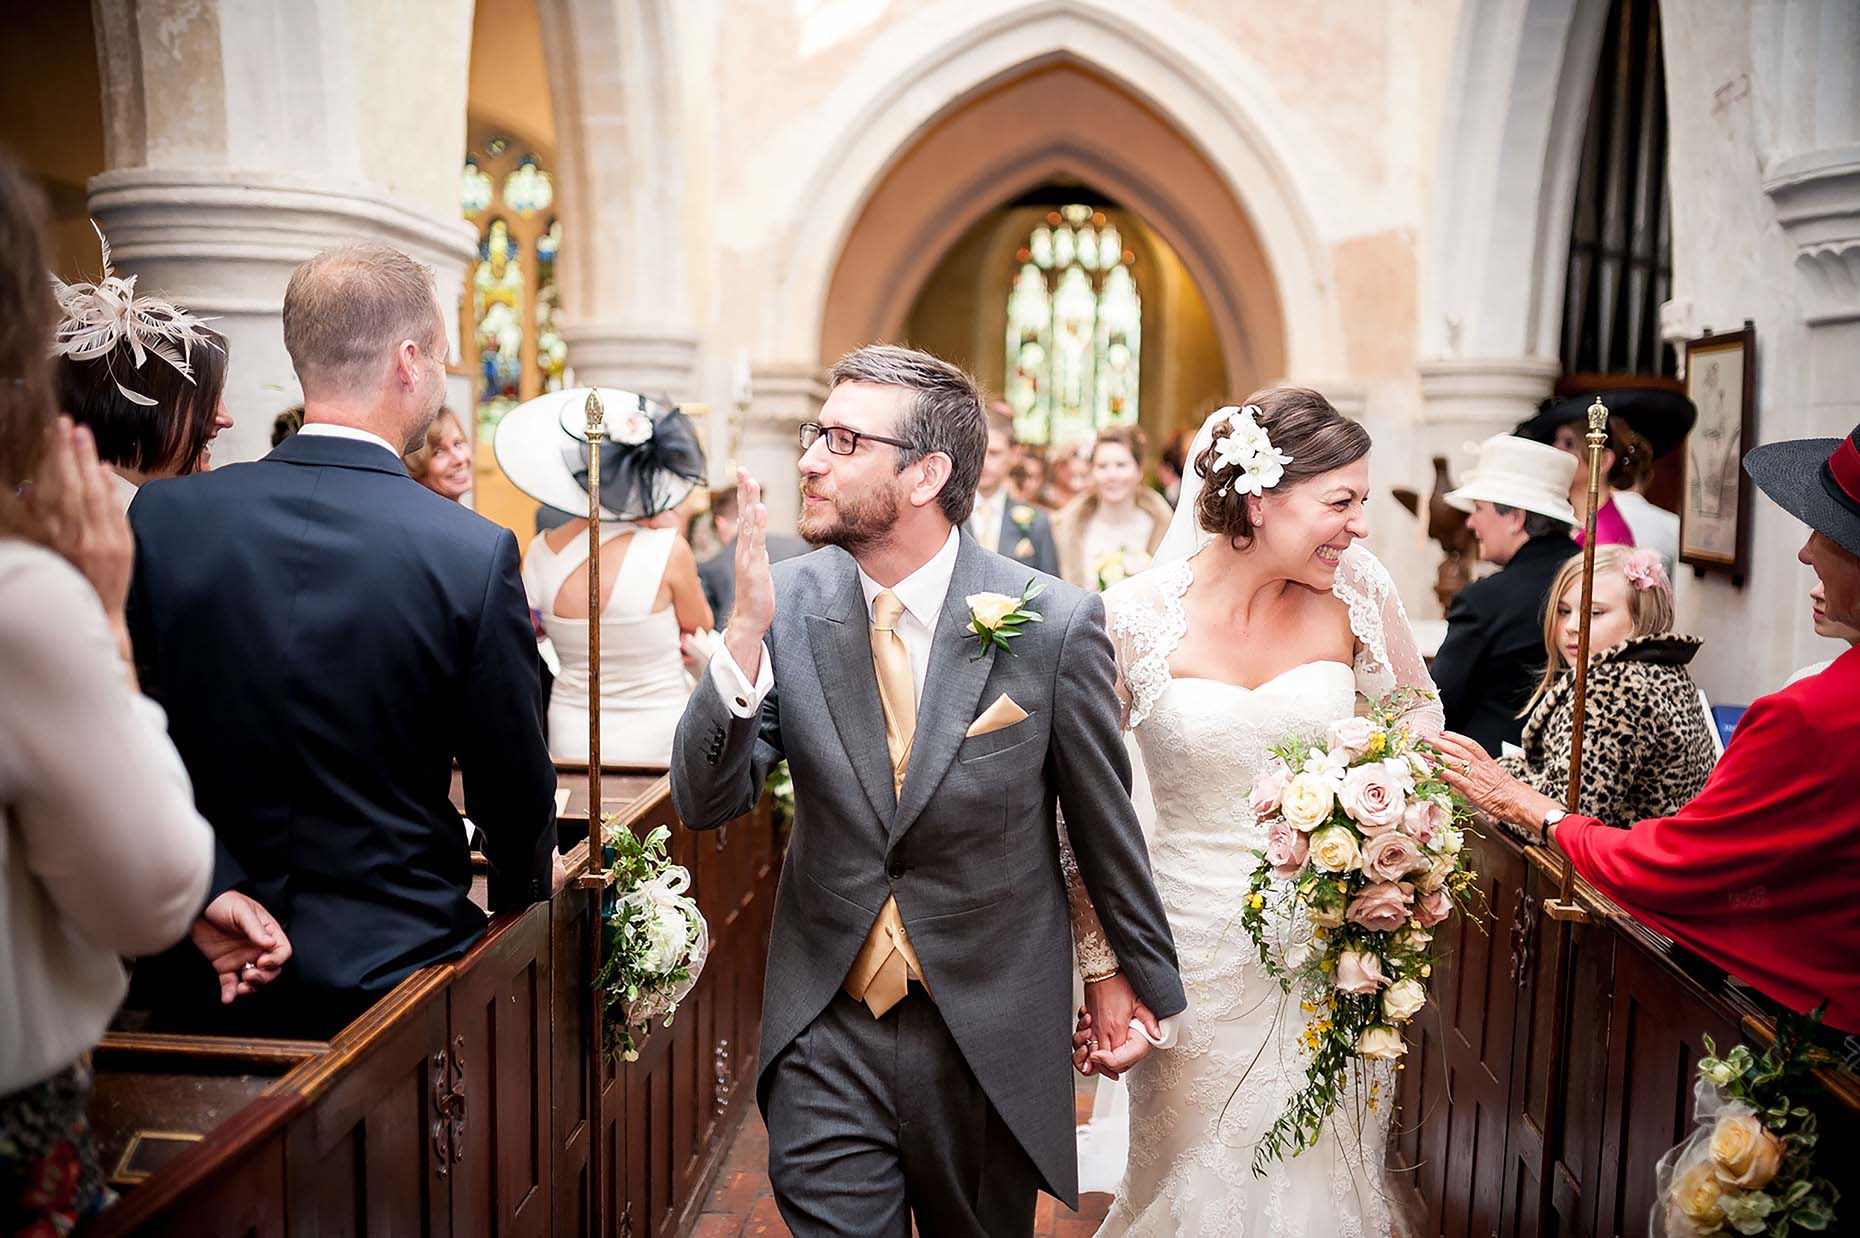 happy-couple-walk-down-aisle-church-wedding-love-devon-33